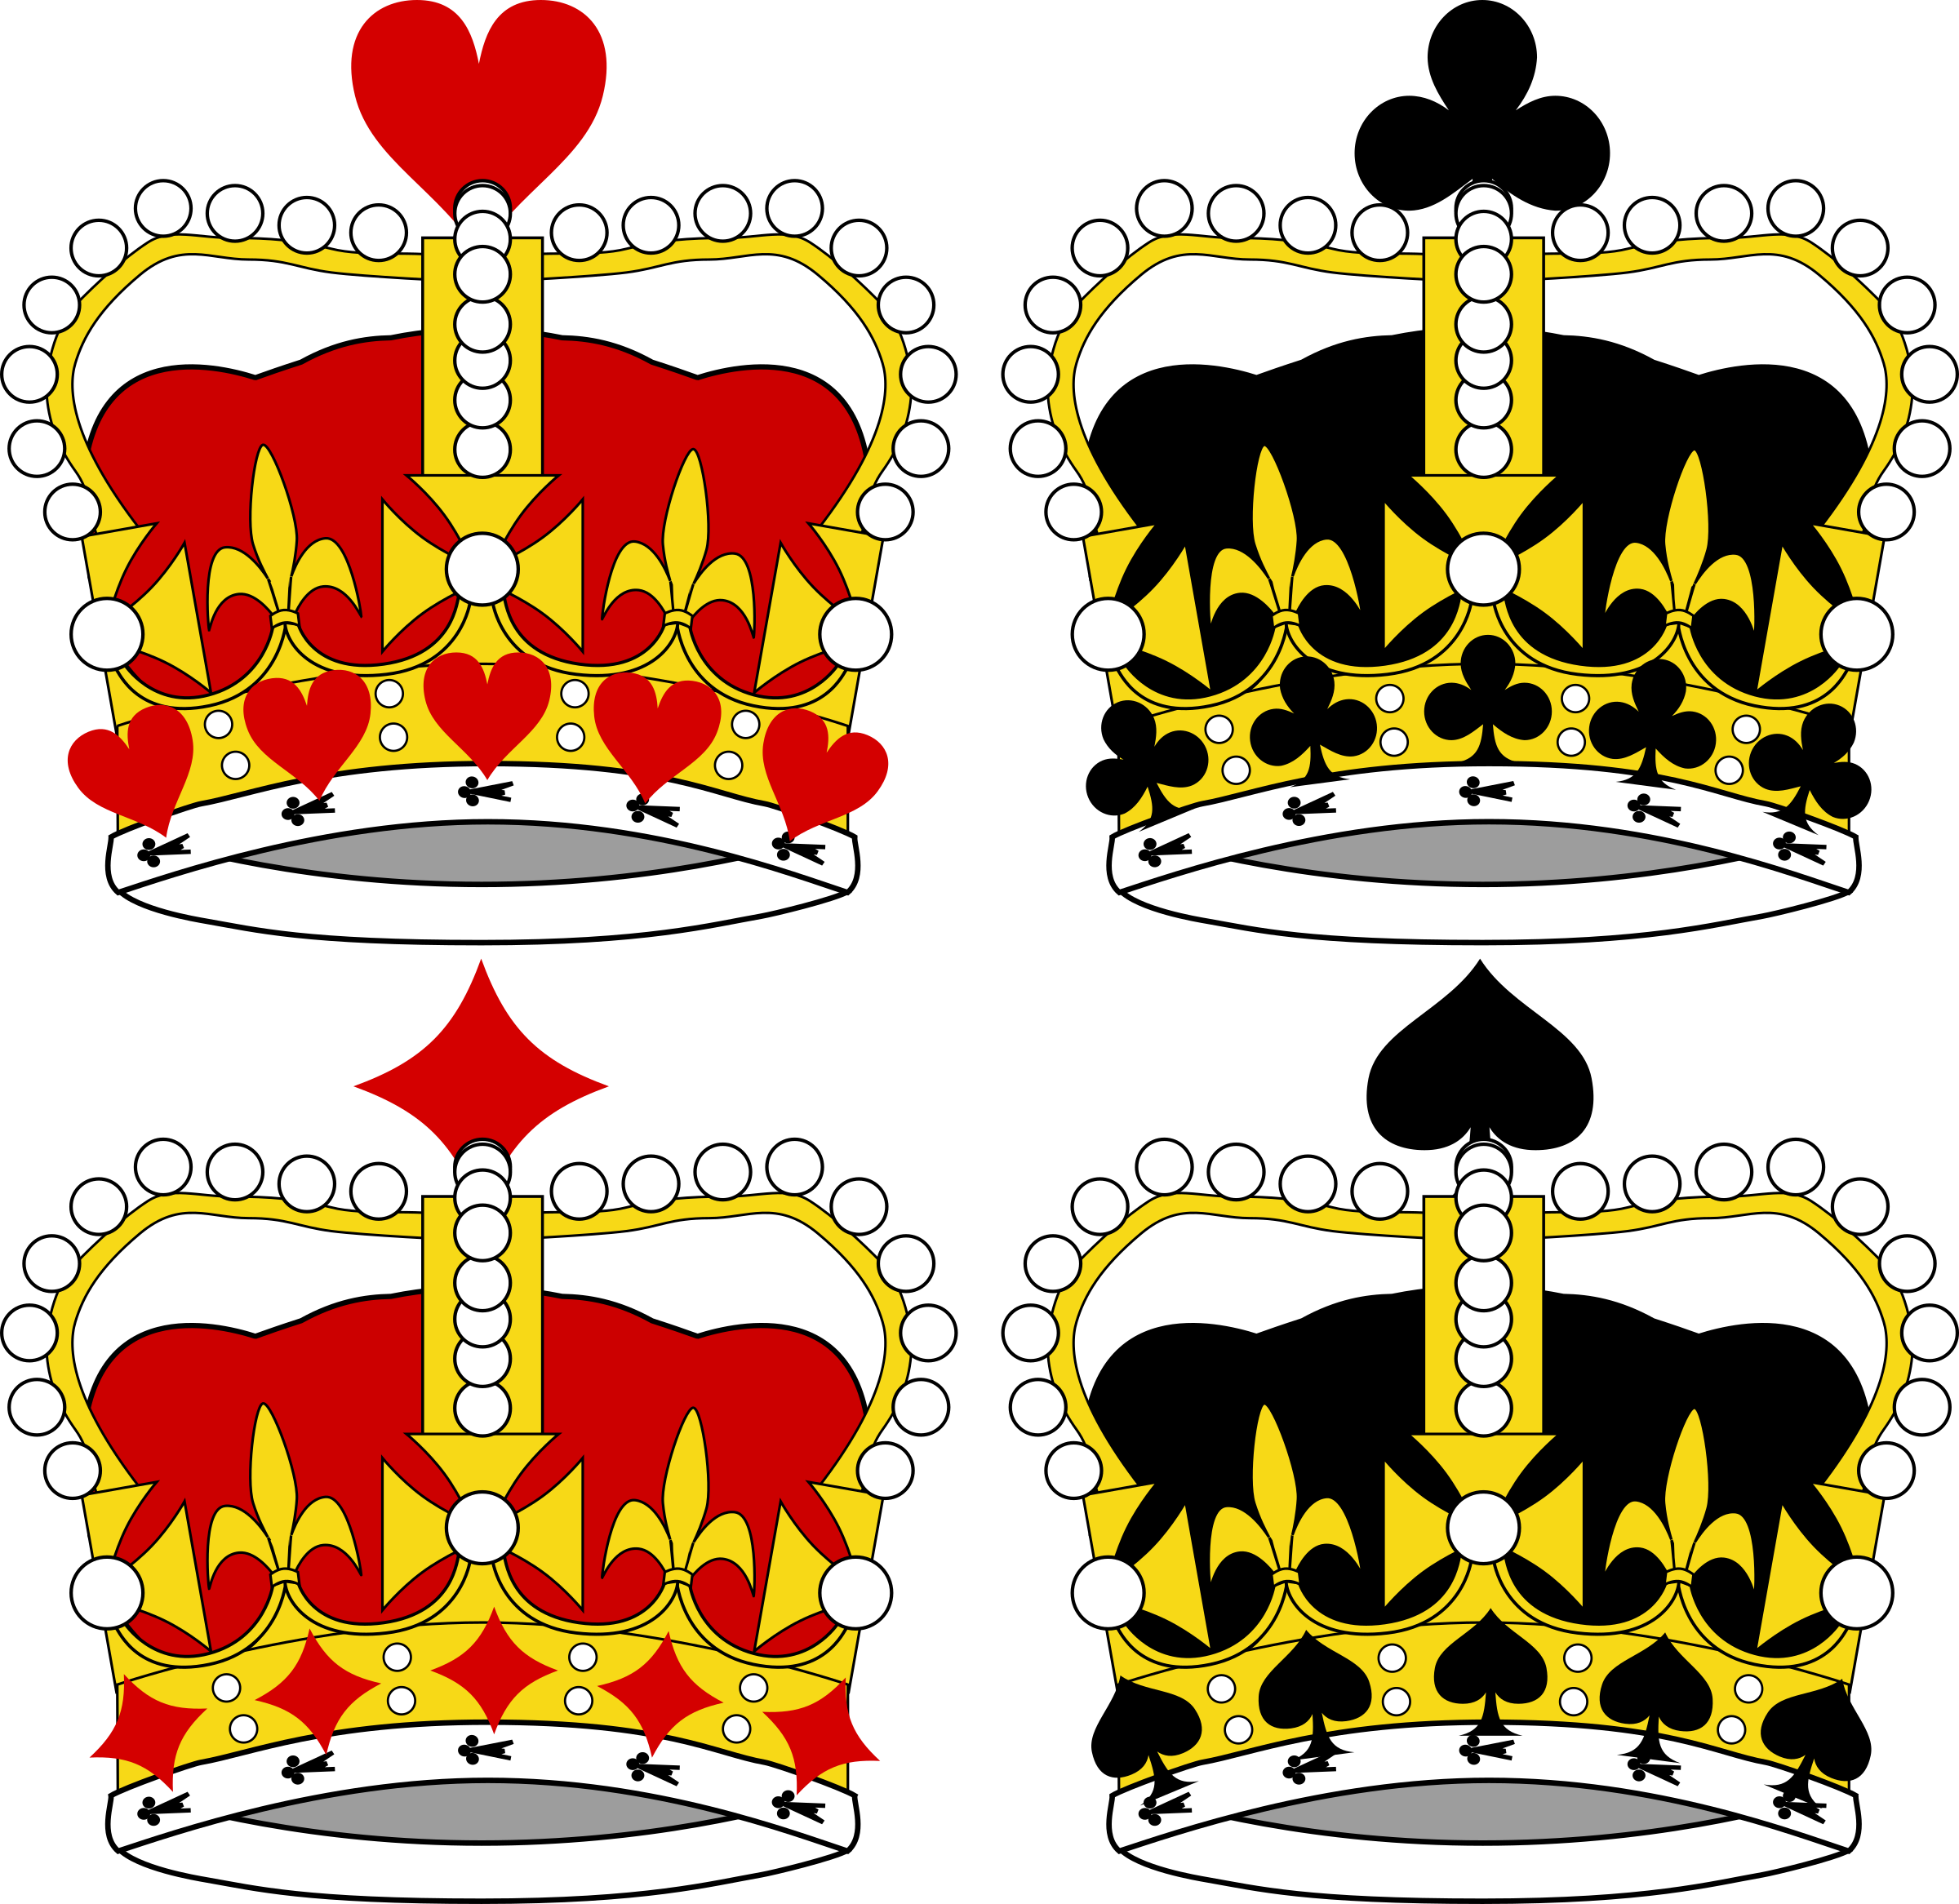 Stylized Crowns for Card Faces by momoko